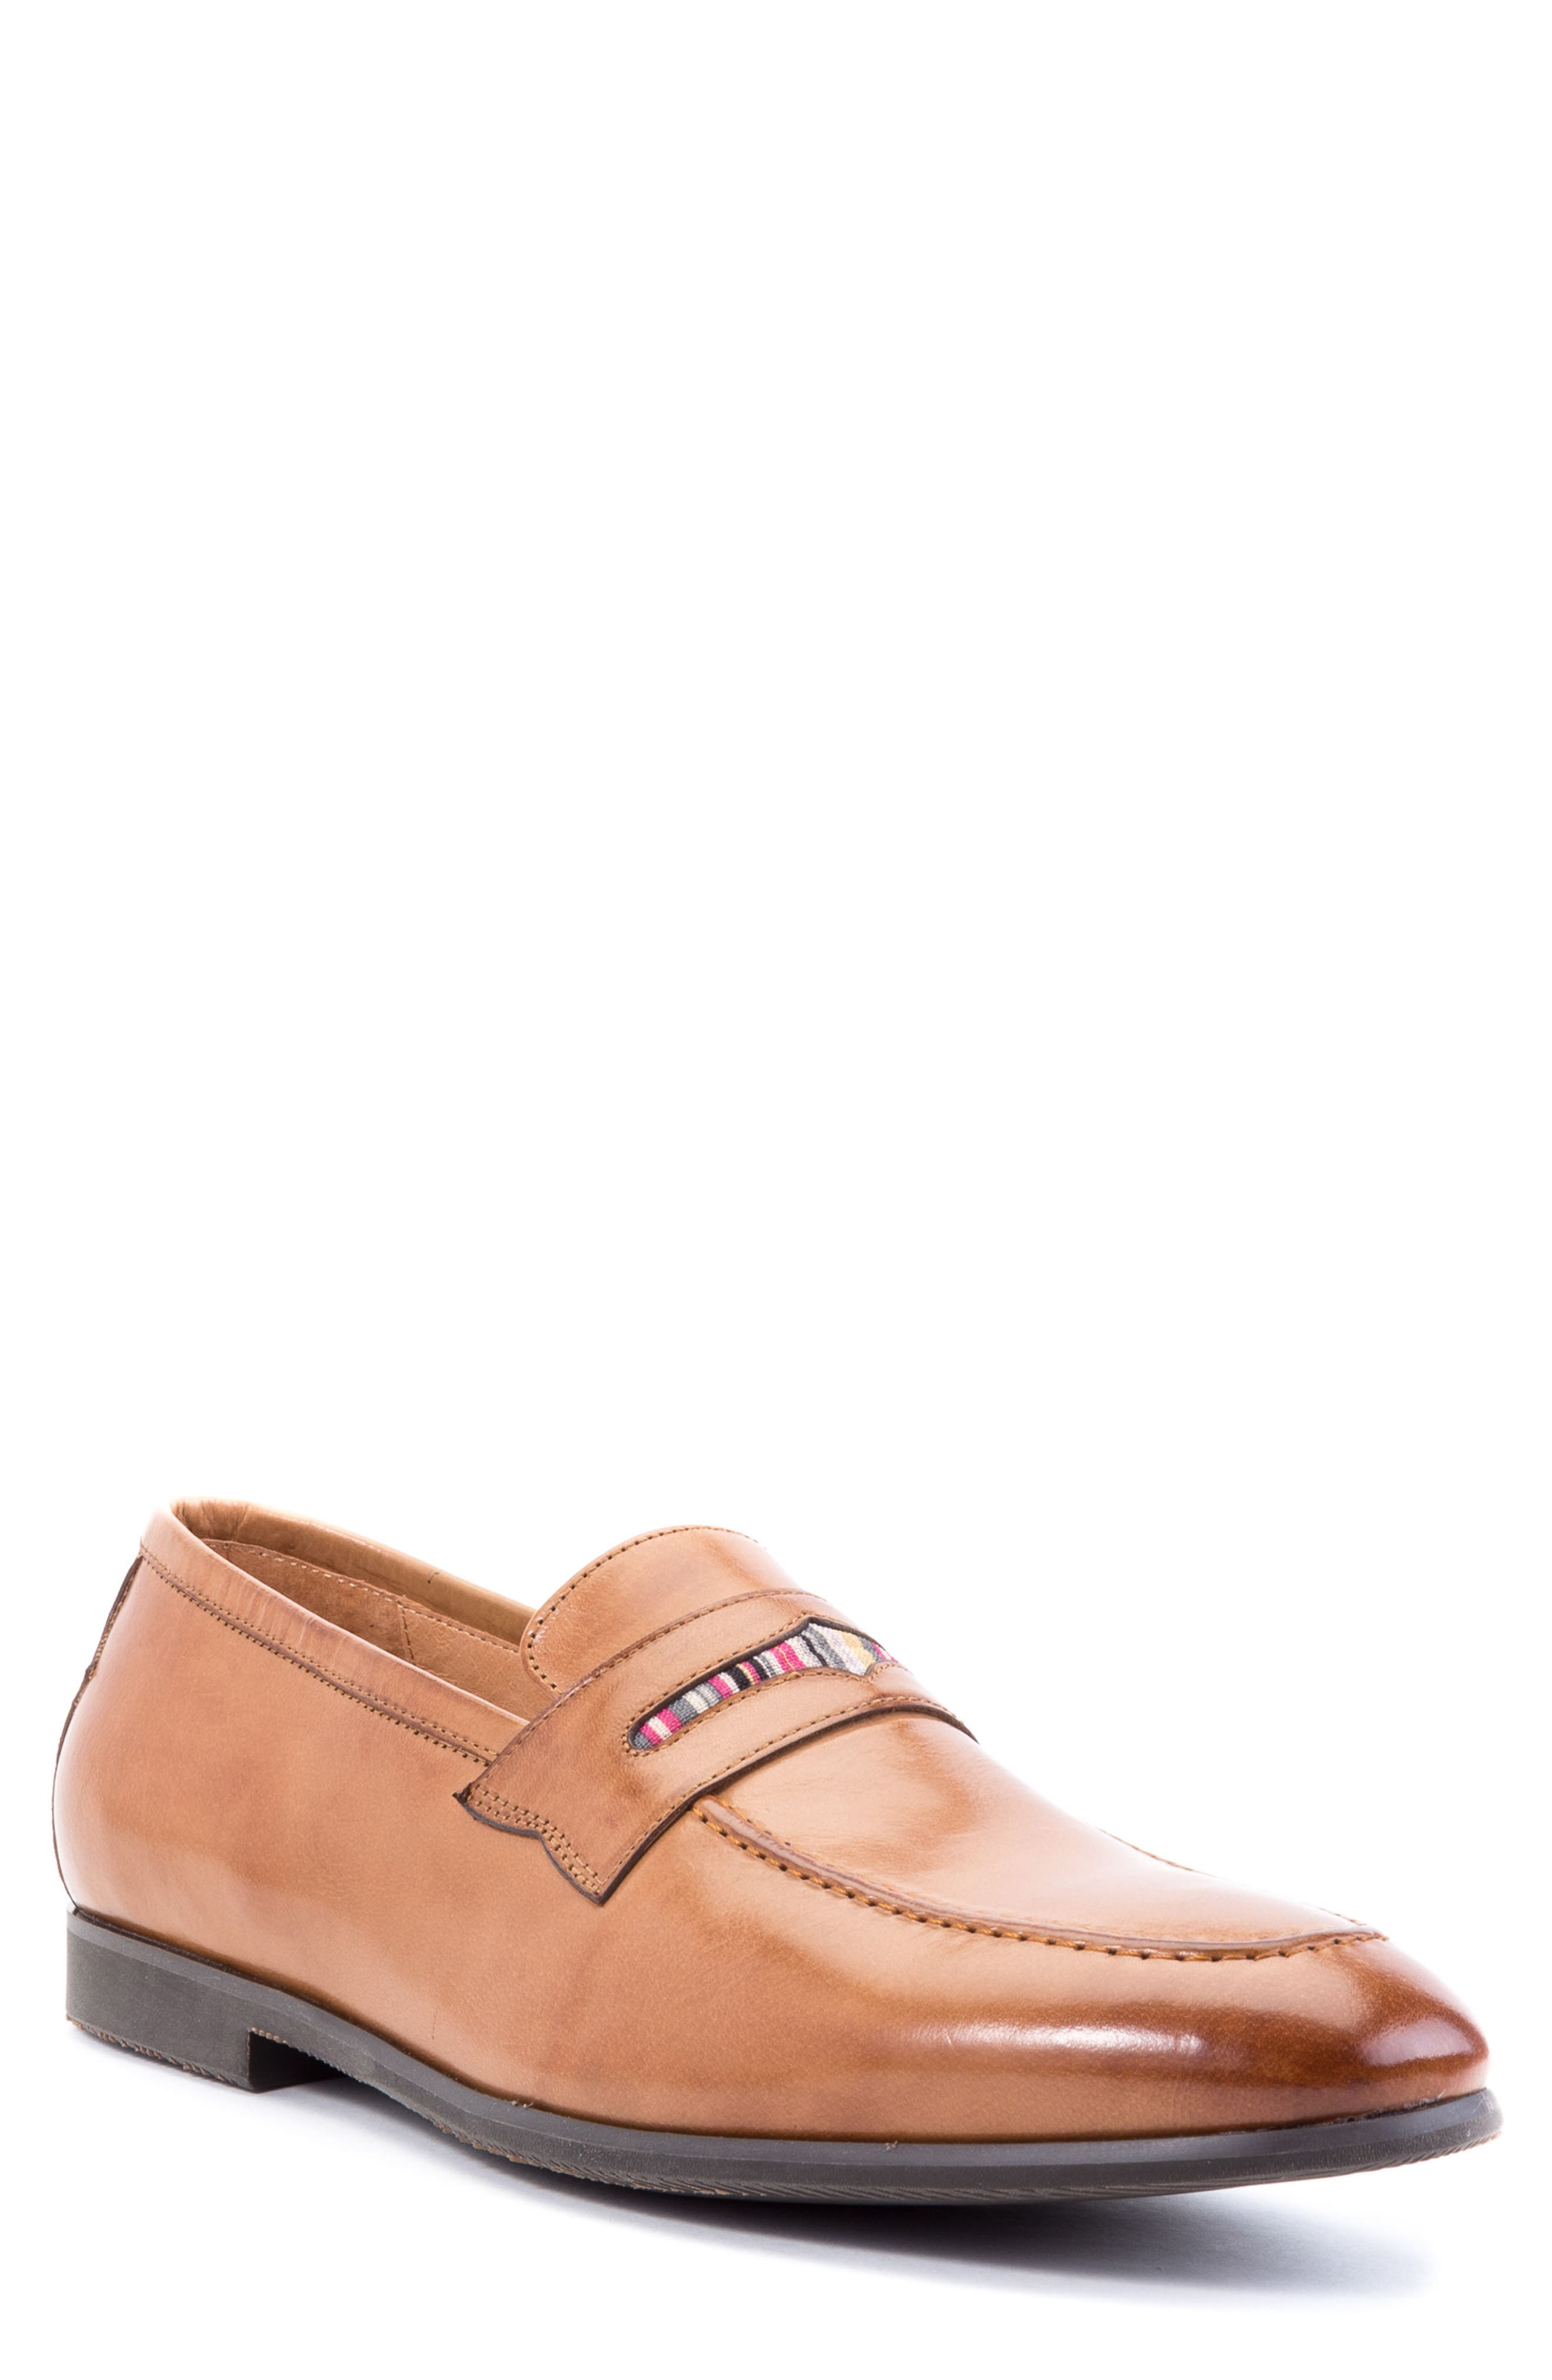 Hugo Penny Loafer,                         Main,                         color, Cognac Leather